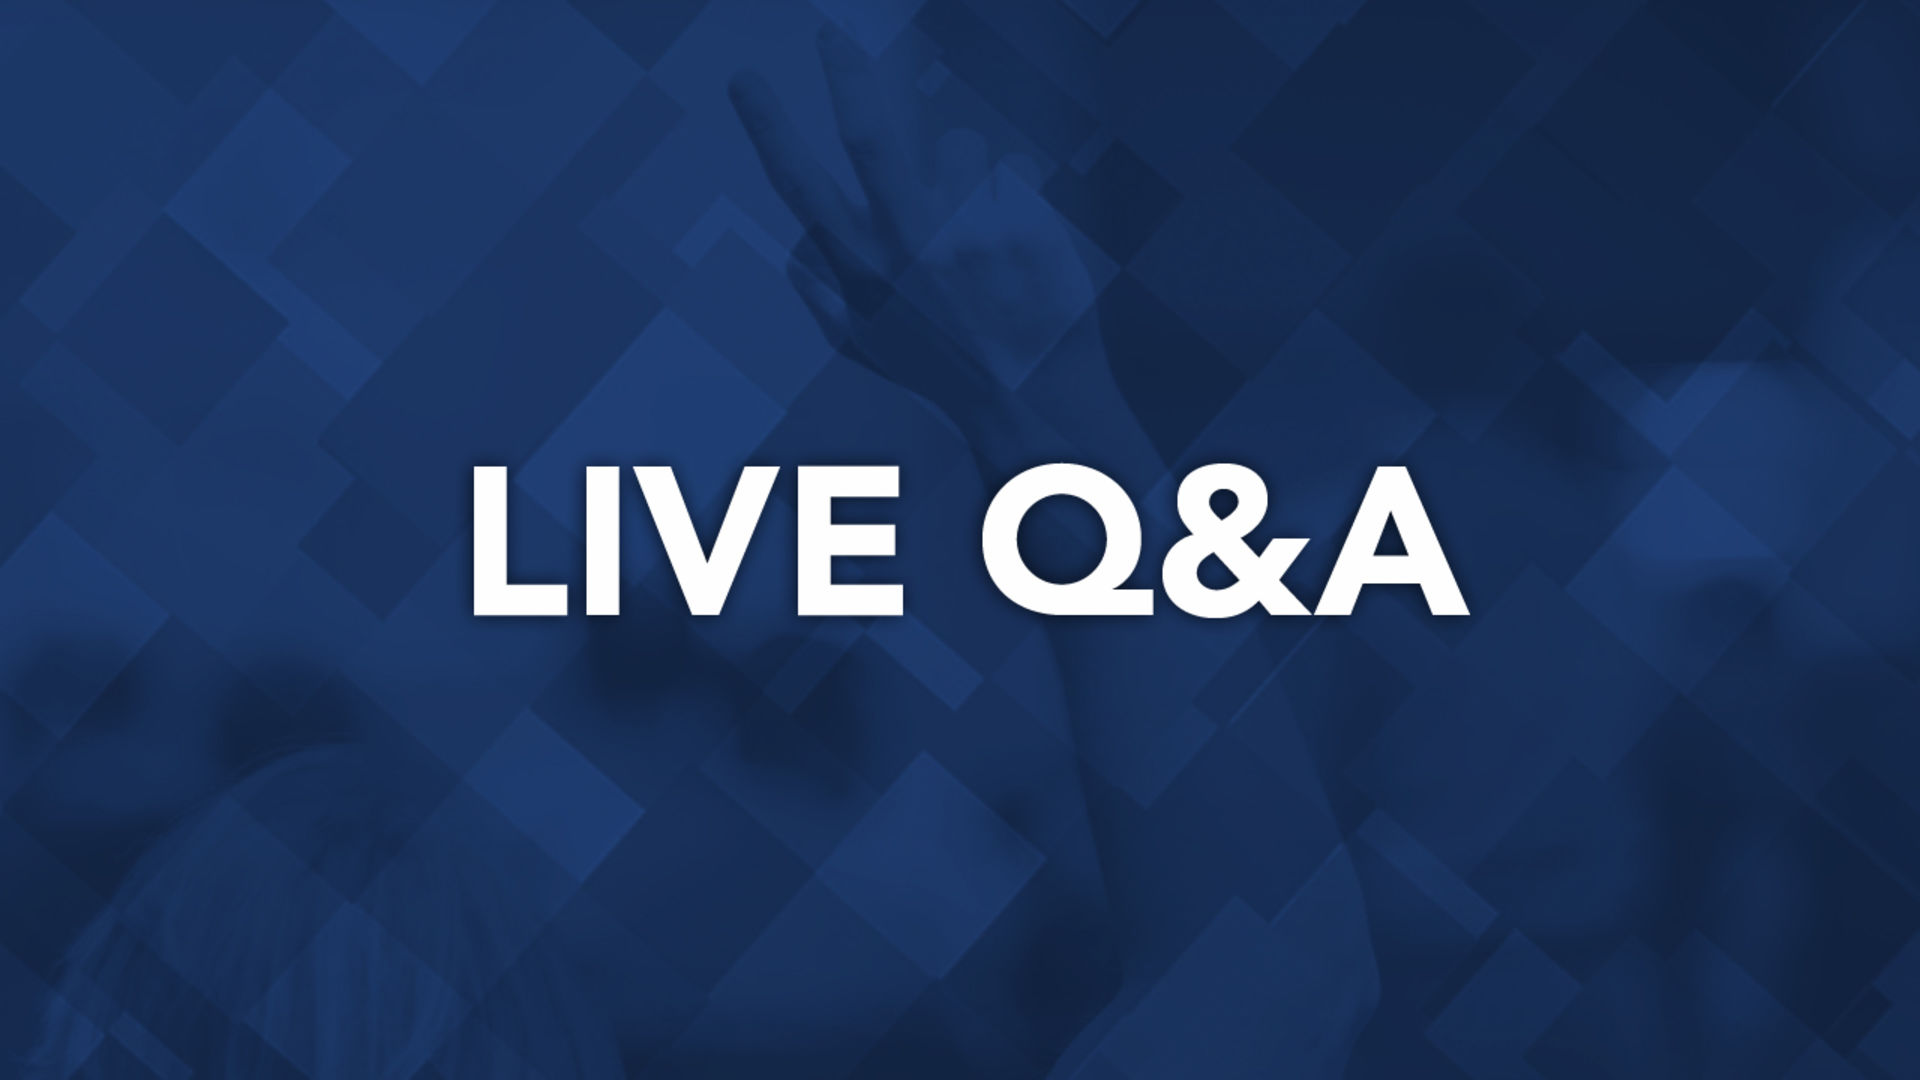 Live Q&A on the do's and don'ts during the homebuying process